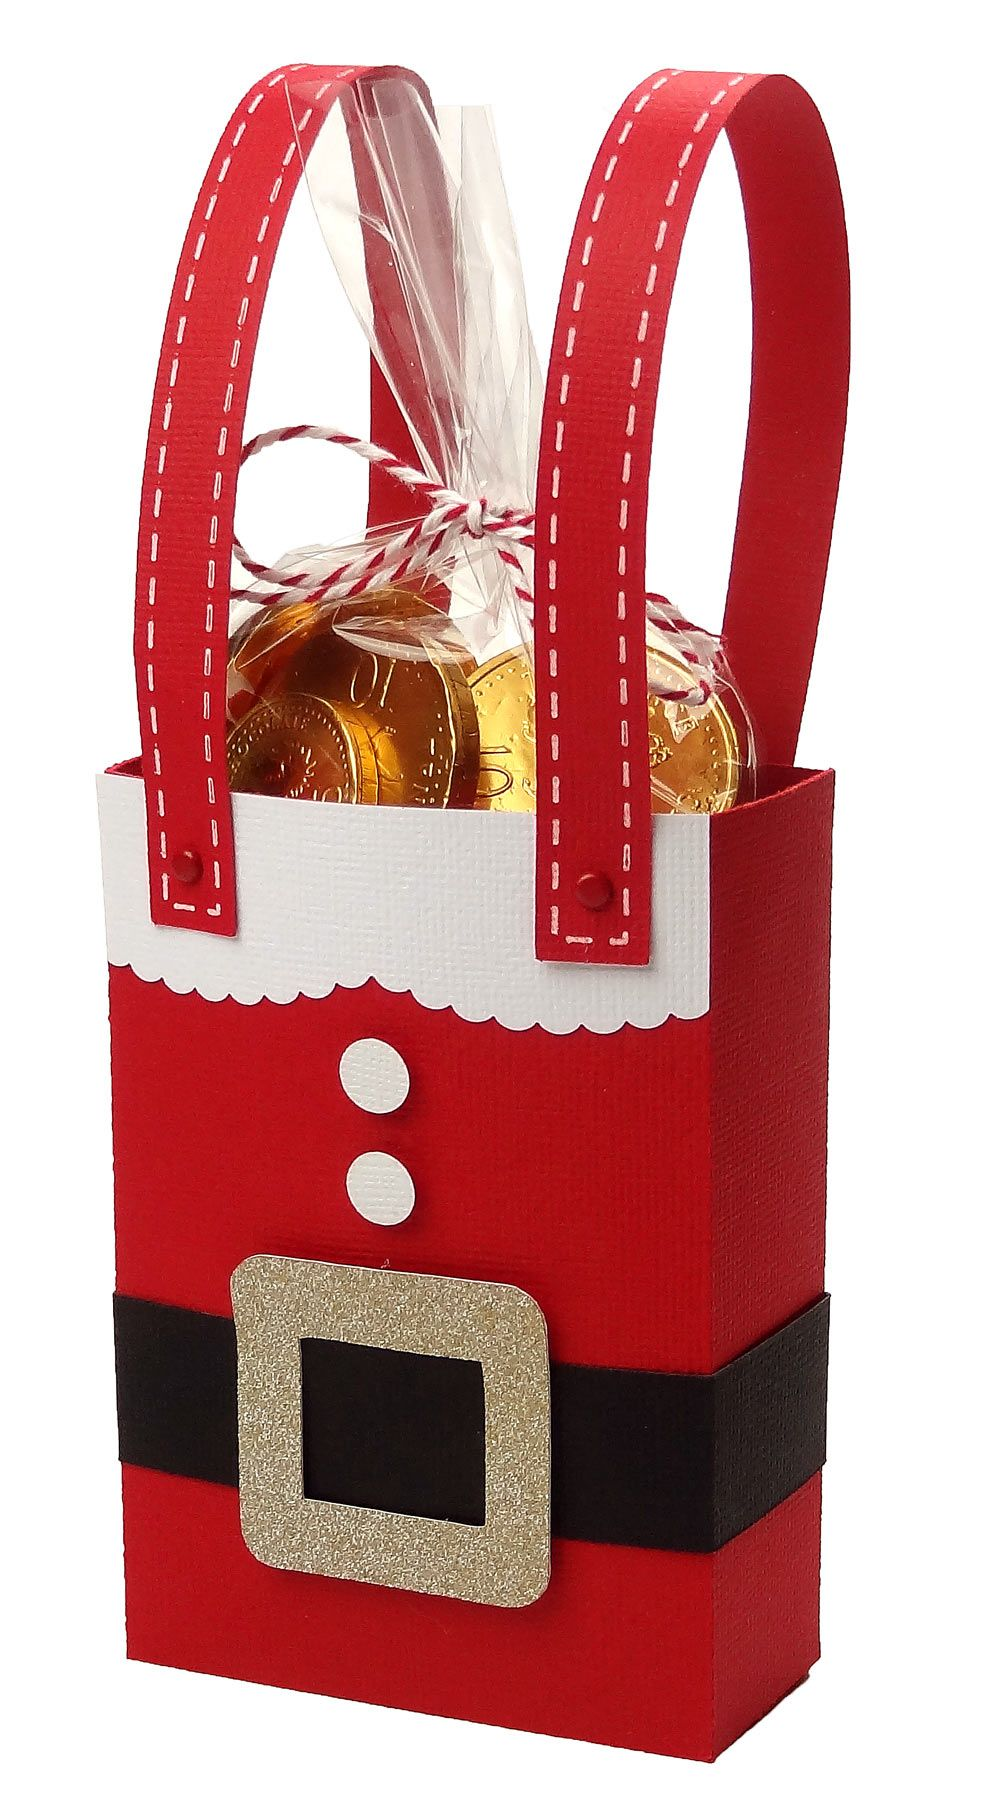 Santa Christmas Gift Bag By Pazzles Design Team Member Joanna Wright Perfect For Classroom Or Neighbor Treats